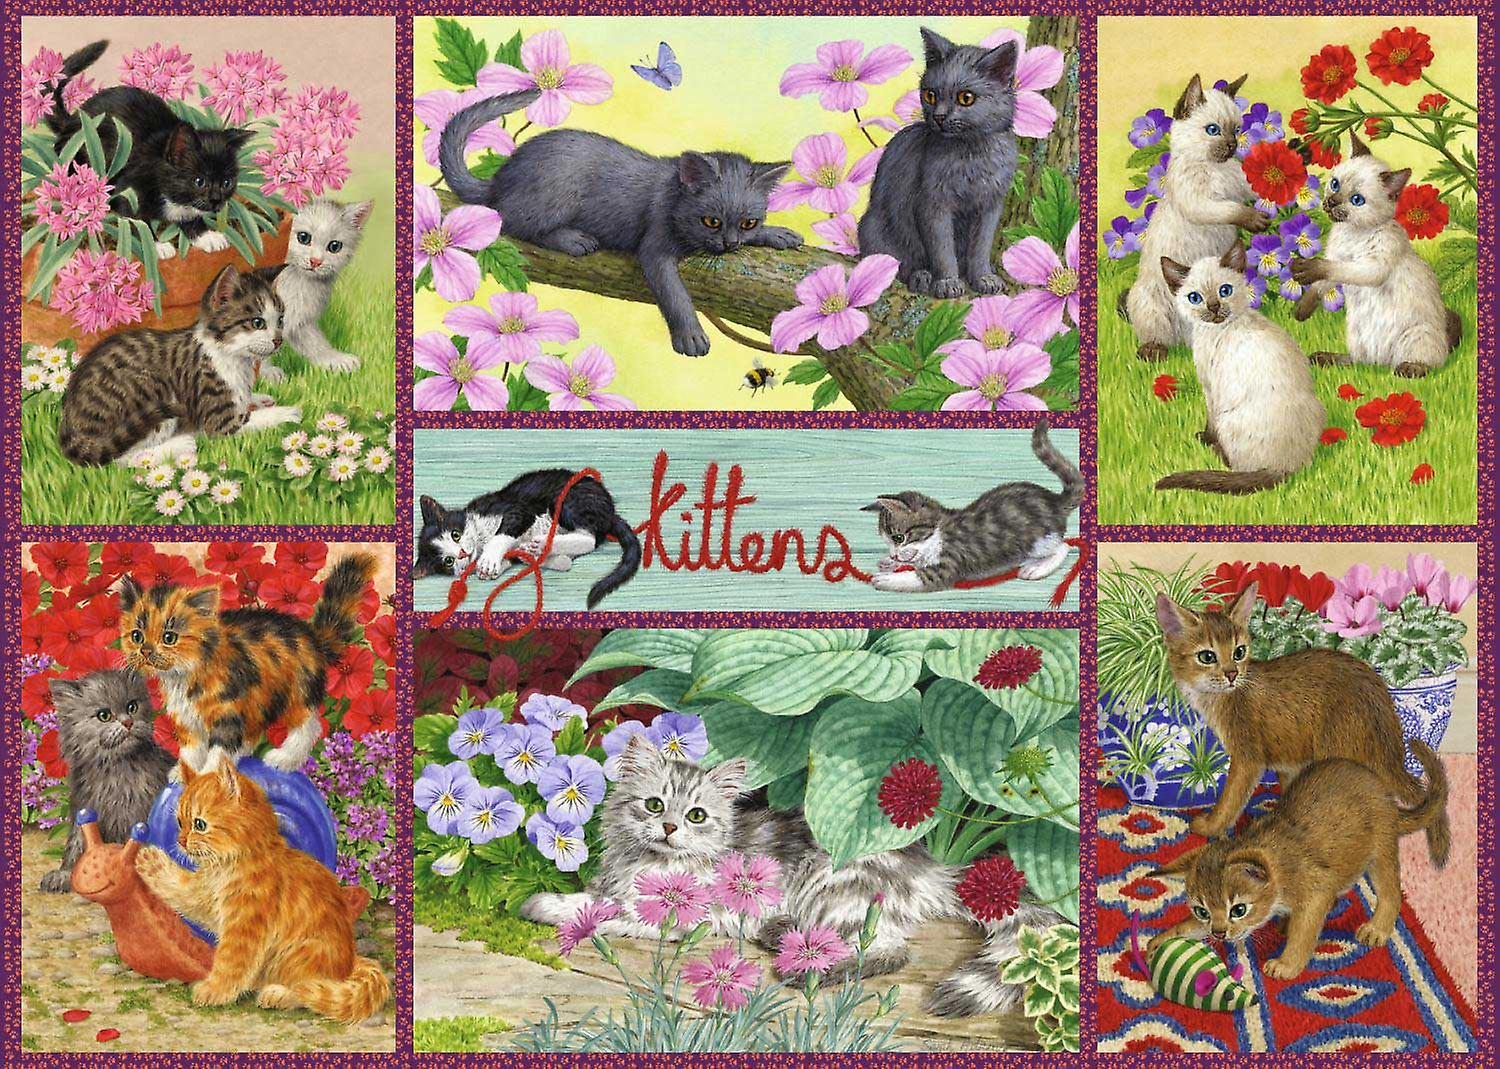 Falcon Deluxe Playful Kittens Jigsaw Puzzle (500 Pieces)